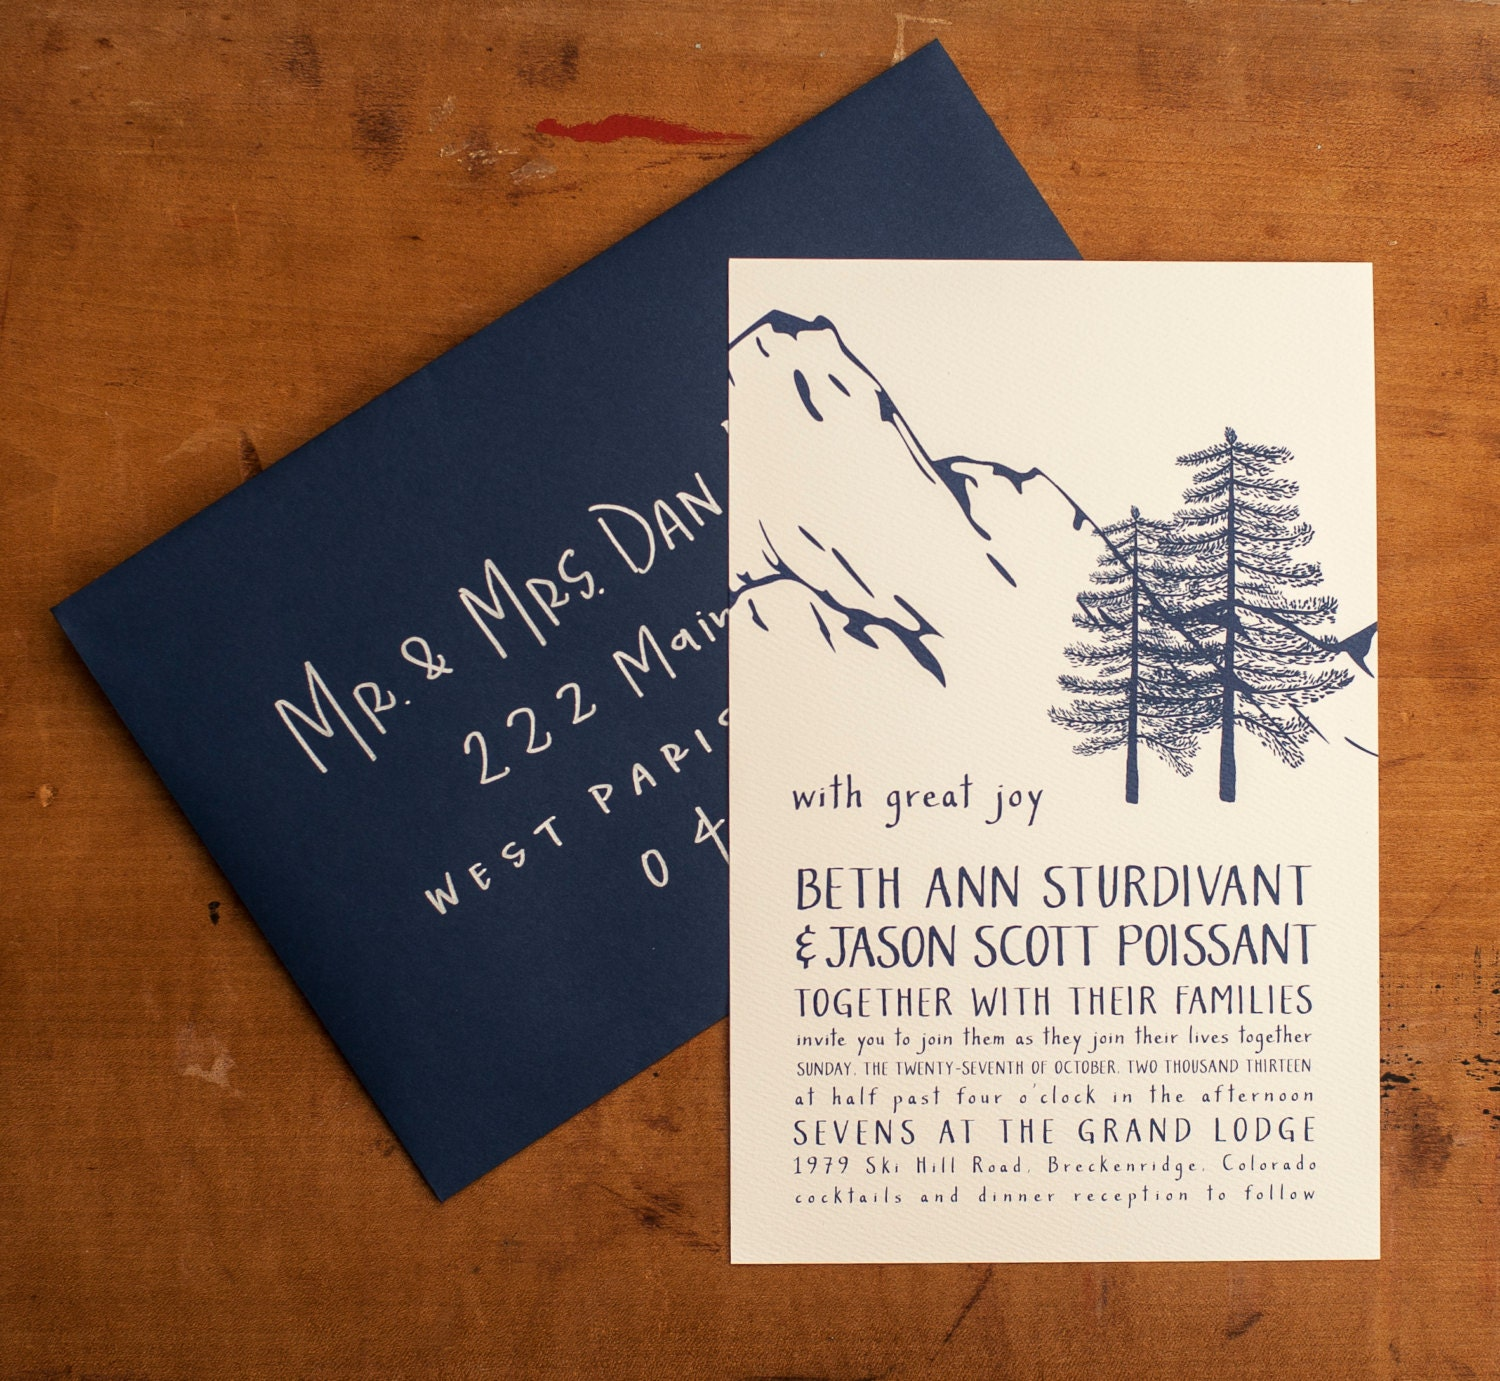 This mountain wedding invitation is a lovely